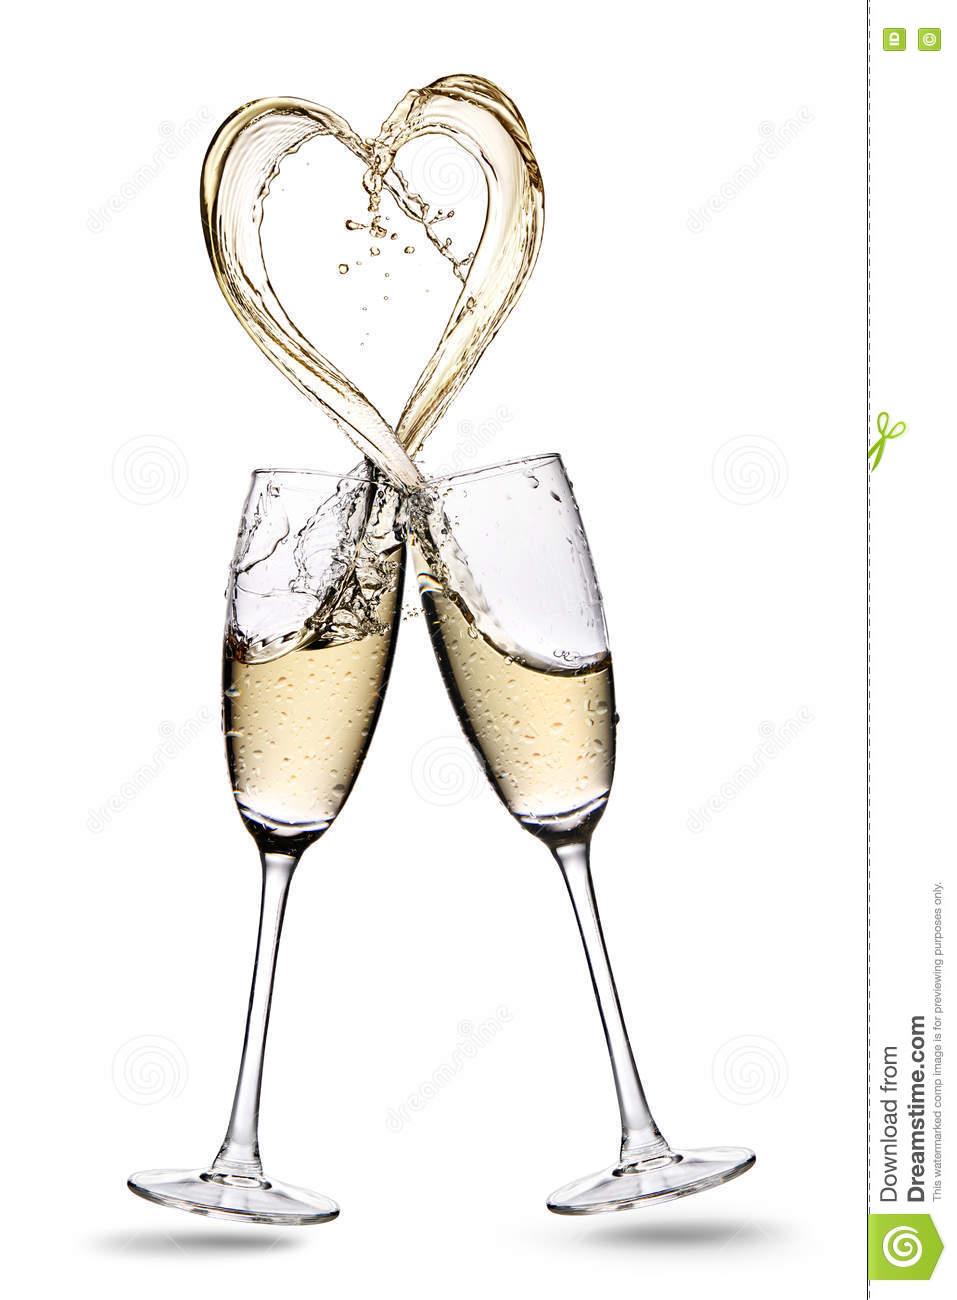 cfa2b86f7b23 Glasses of champagne with heart shape splash isolated on a white background